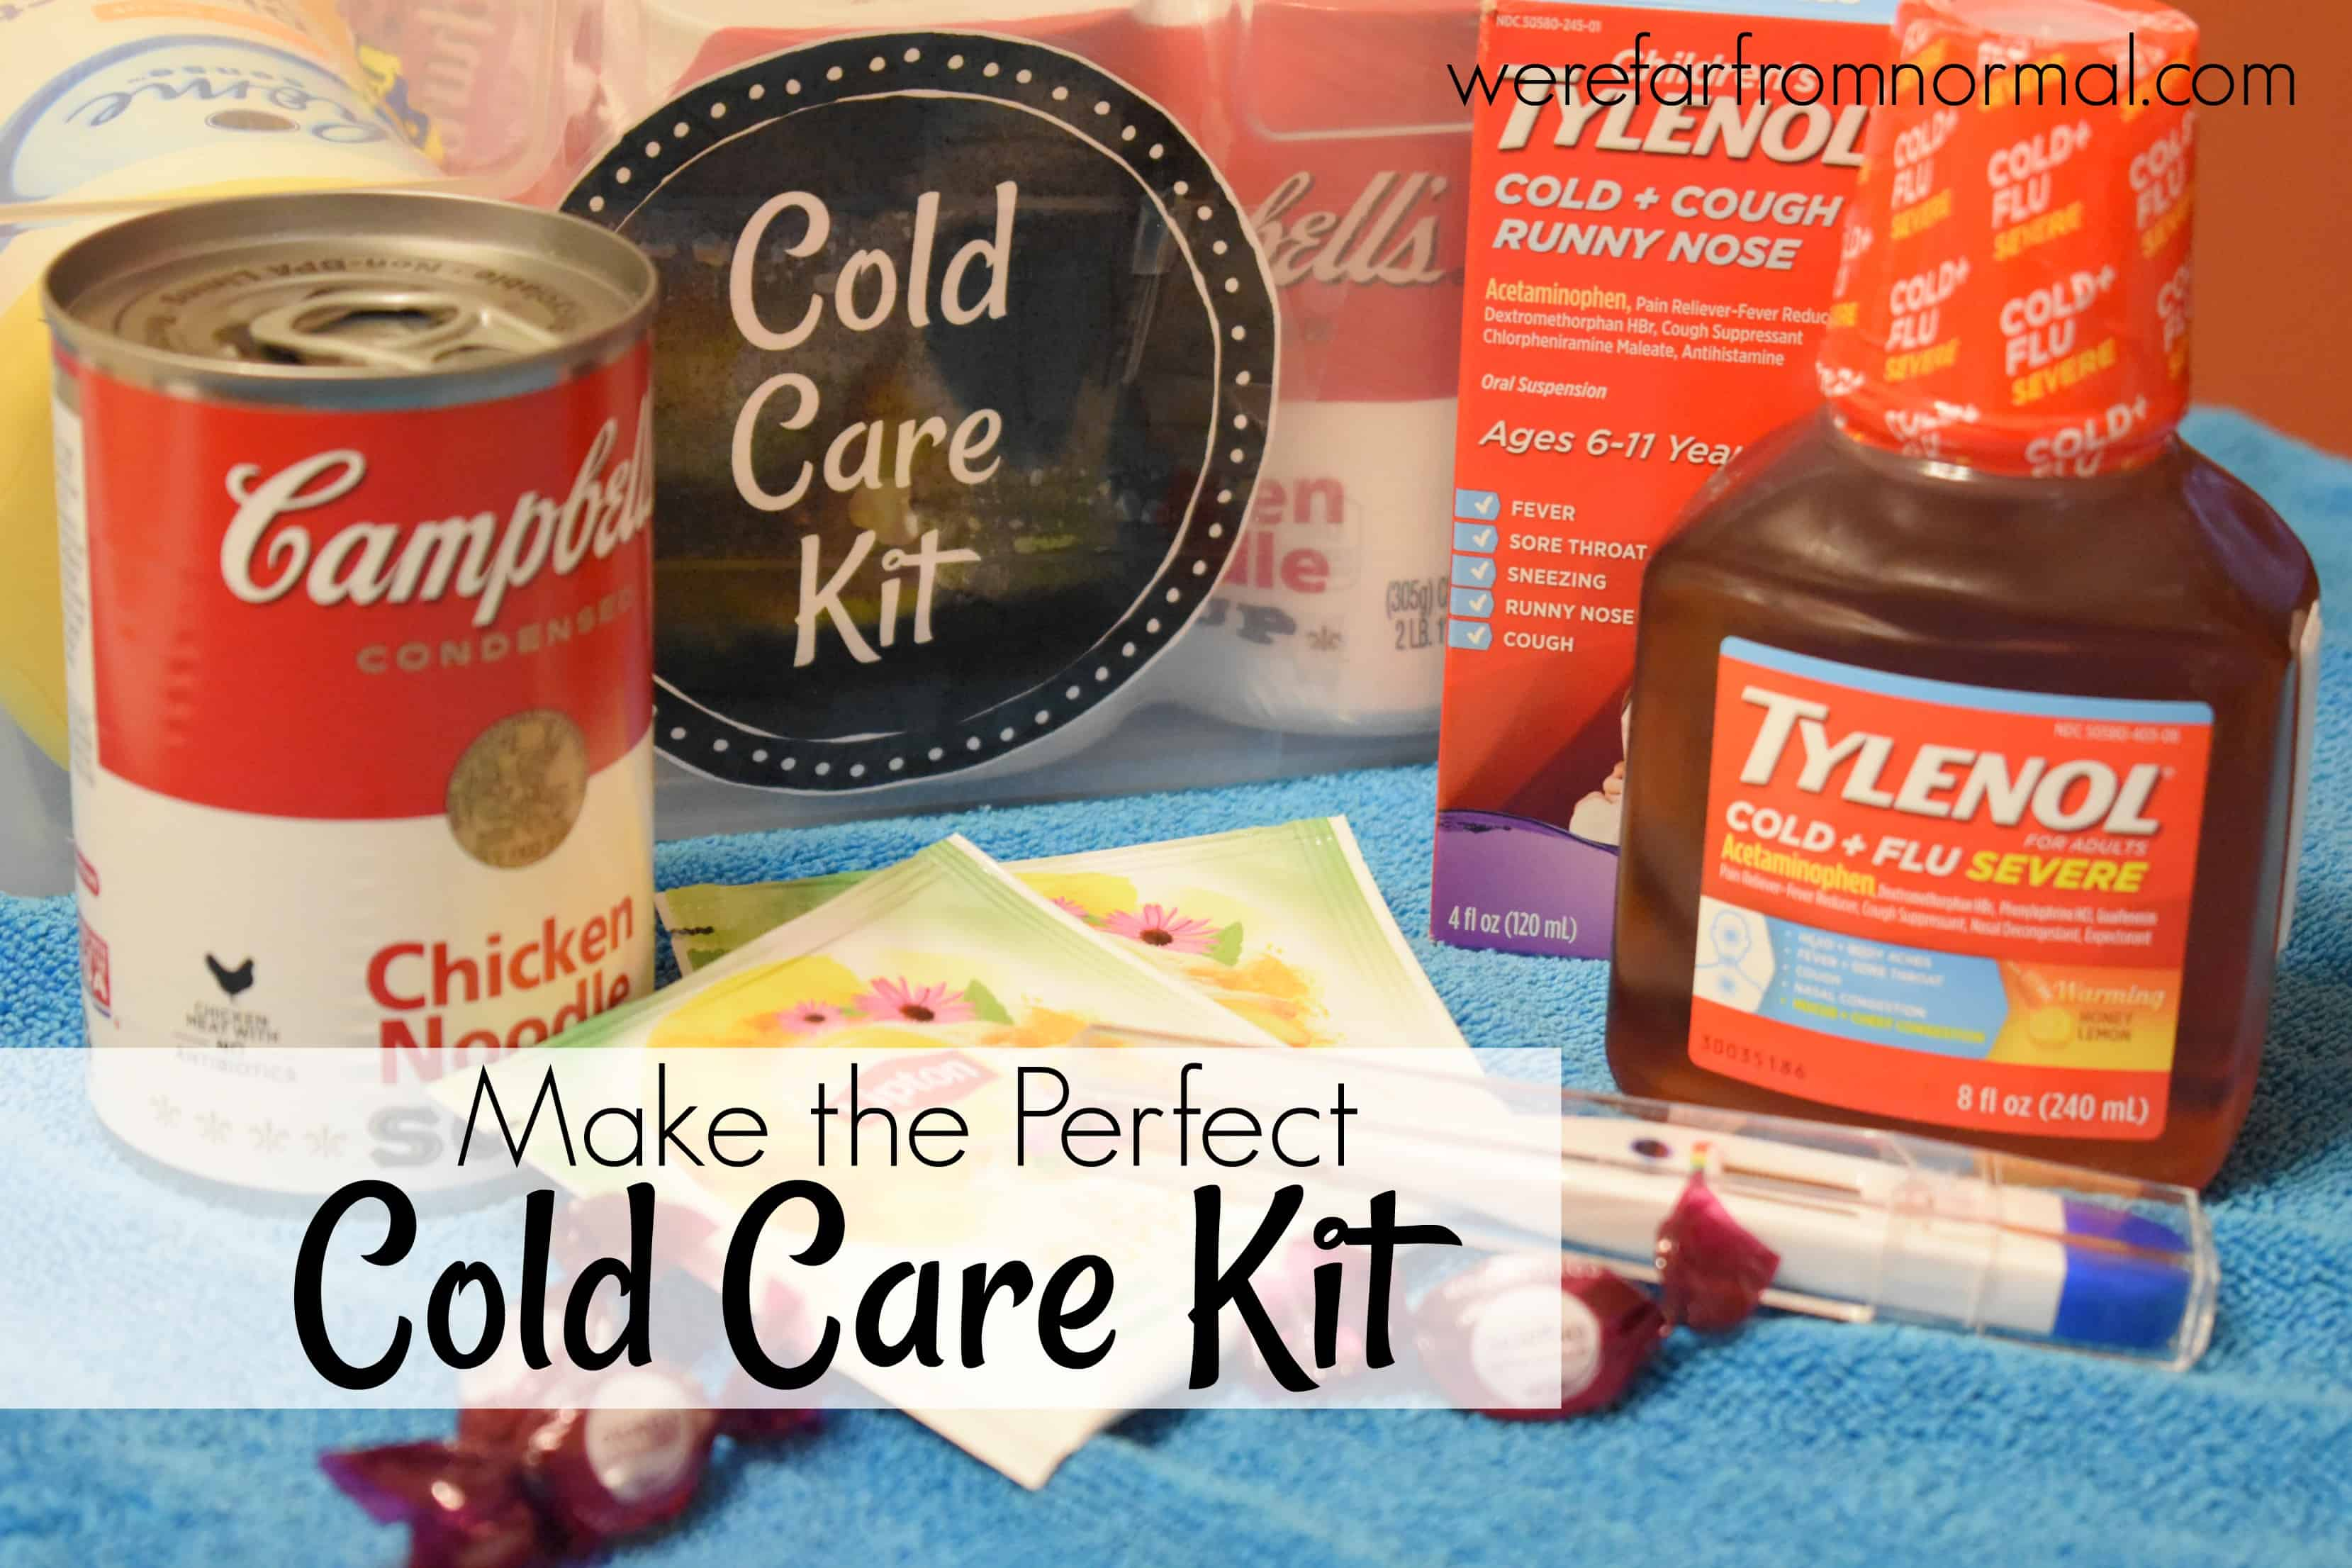 How to Make the Perfect Cold Care Kit